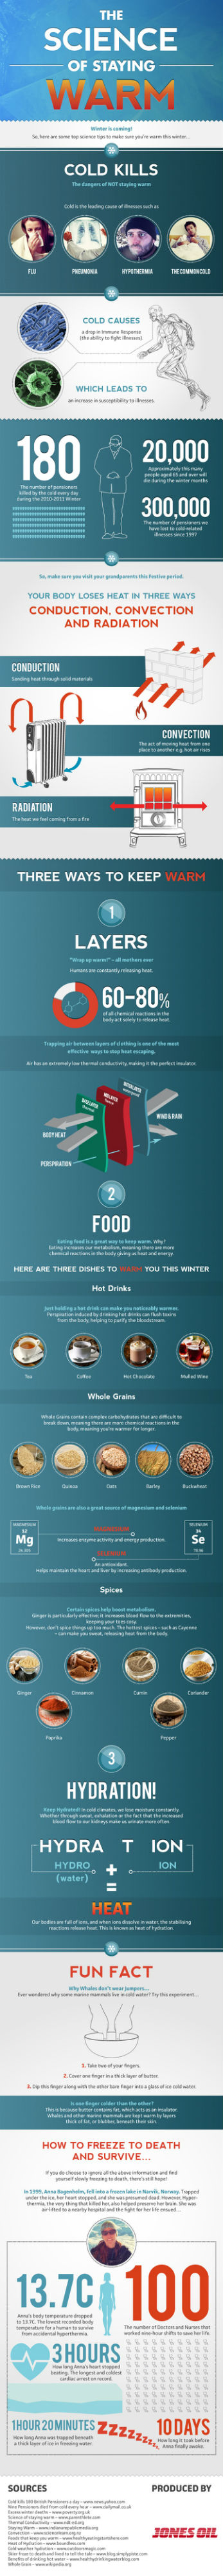 Science of Staying Warm [Infographic]